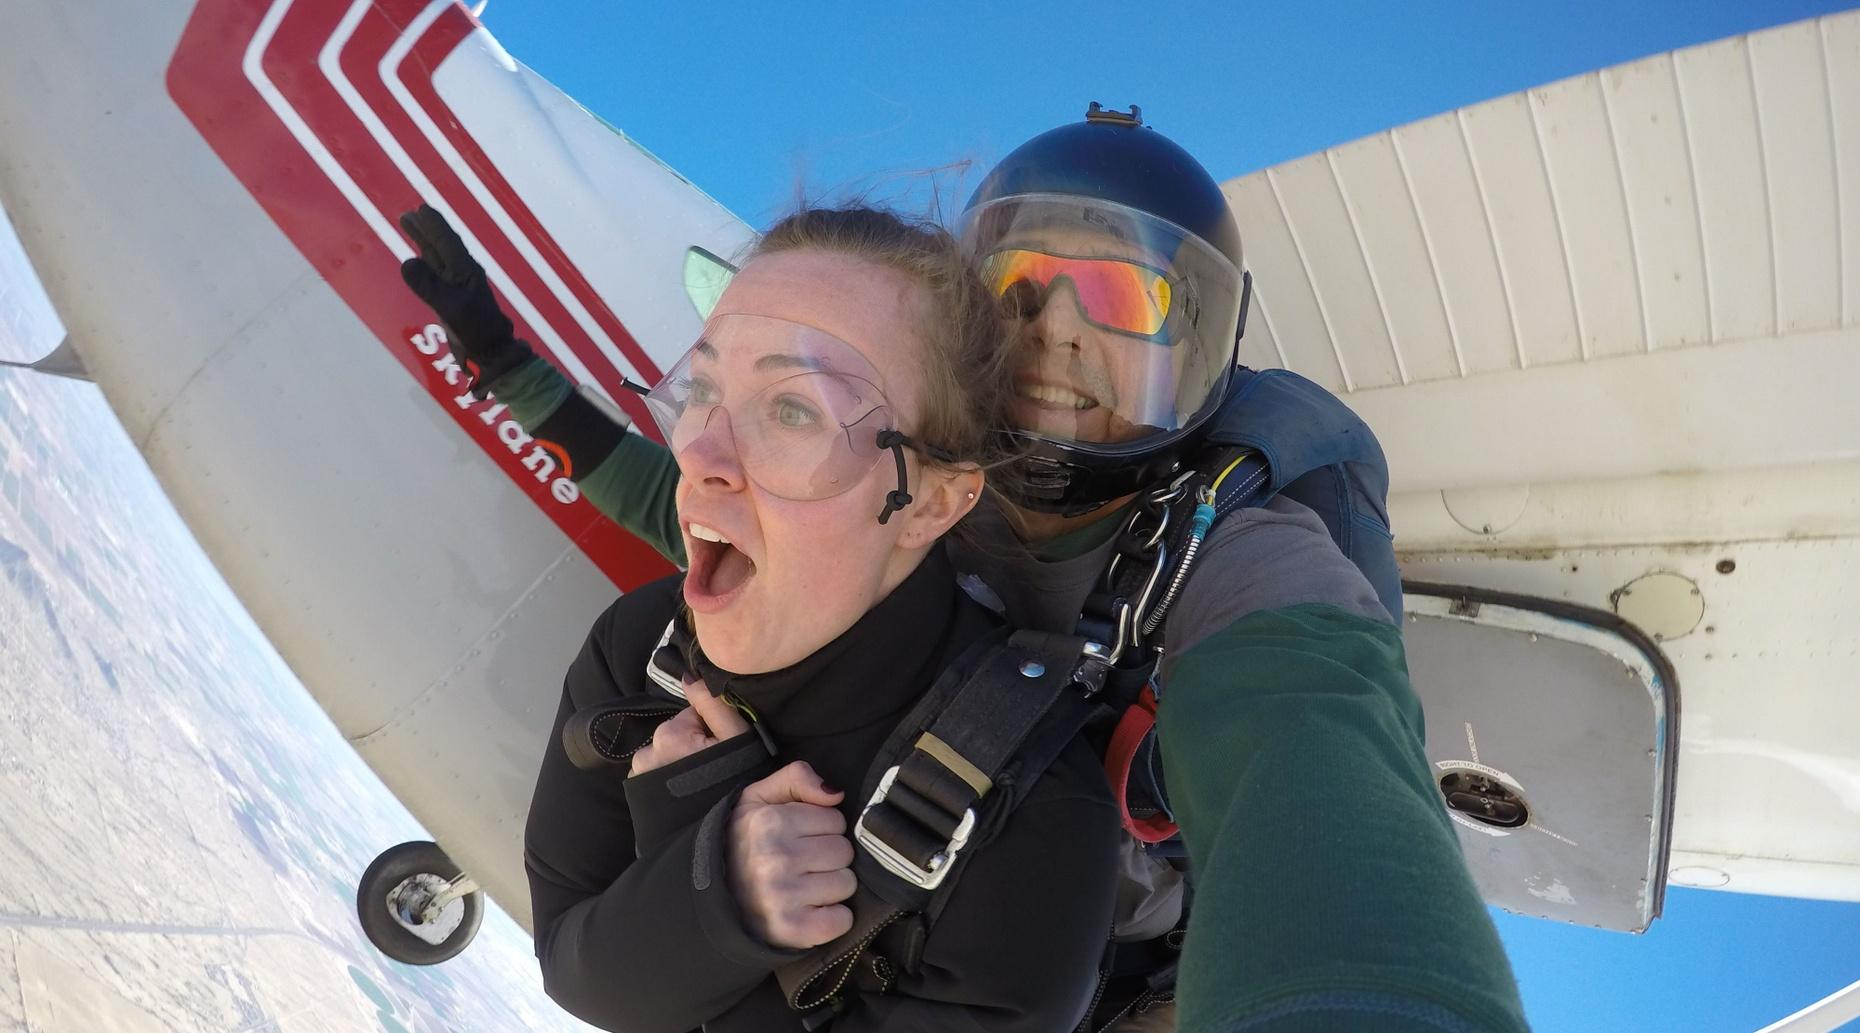 San Antonio Skydive Adventure